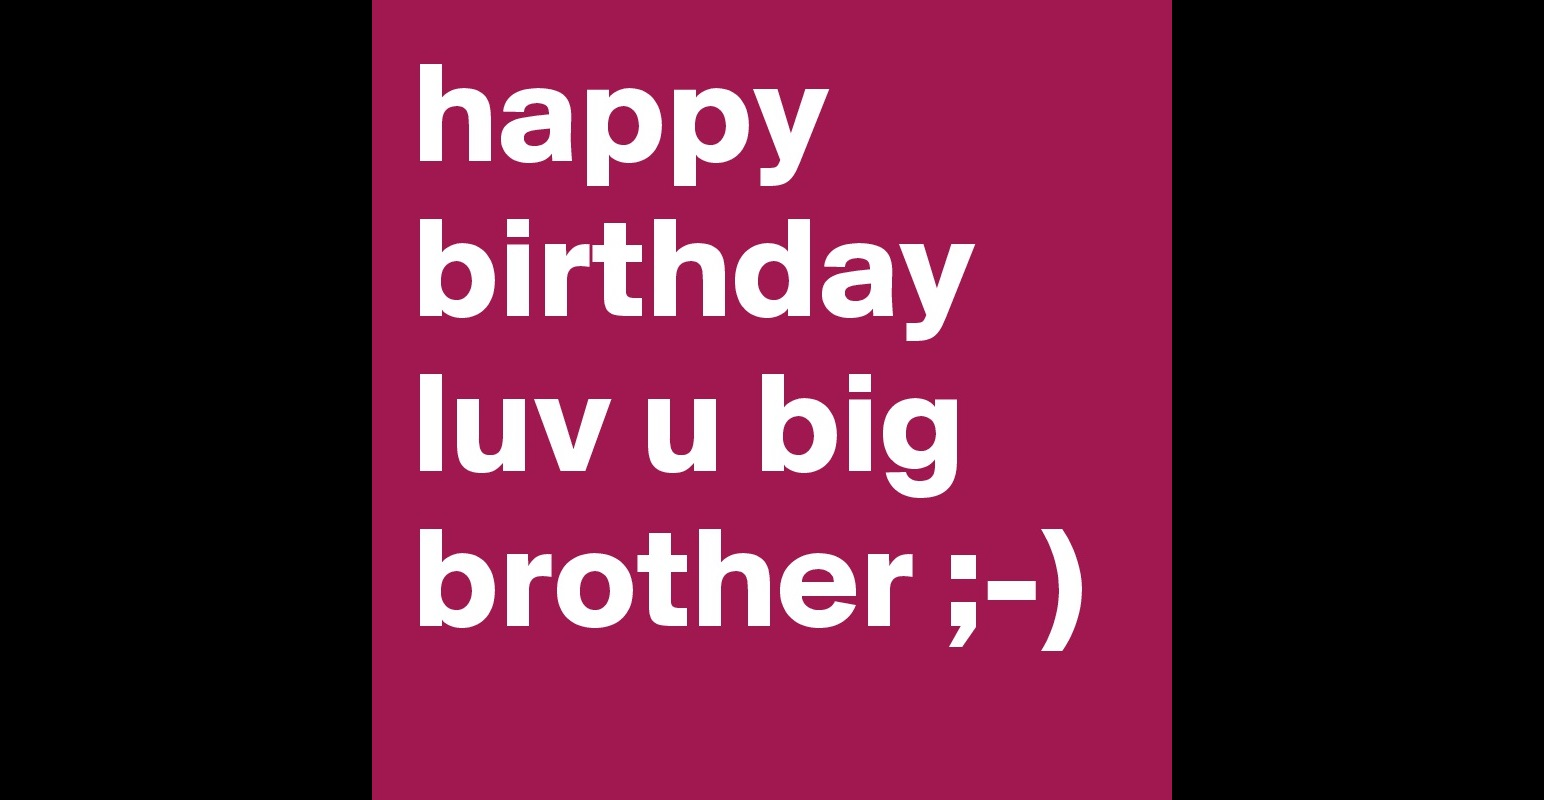 Birthday Cake Images For Big Brother : happy birthday luv u big brother ;-) - Post by adagibson ...